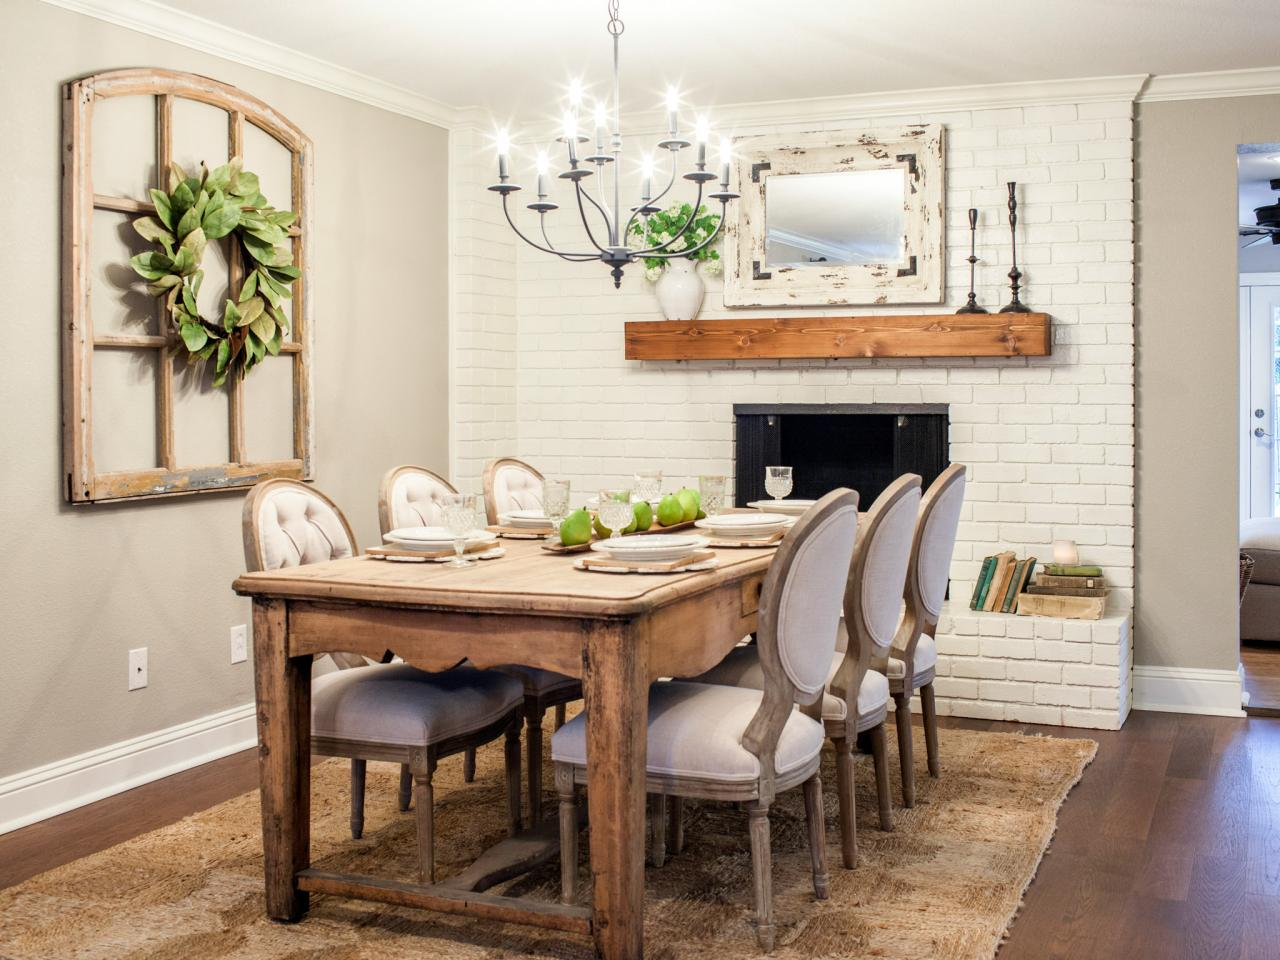 Joanna Gaines Home Design house tours Before And After Kitchen Photos From Hgtvs Fixer Upper Hgtvs Decorating Design Blog Hgtv